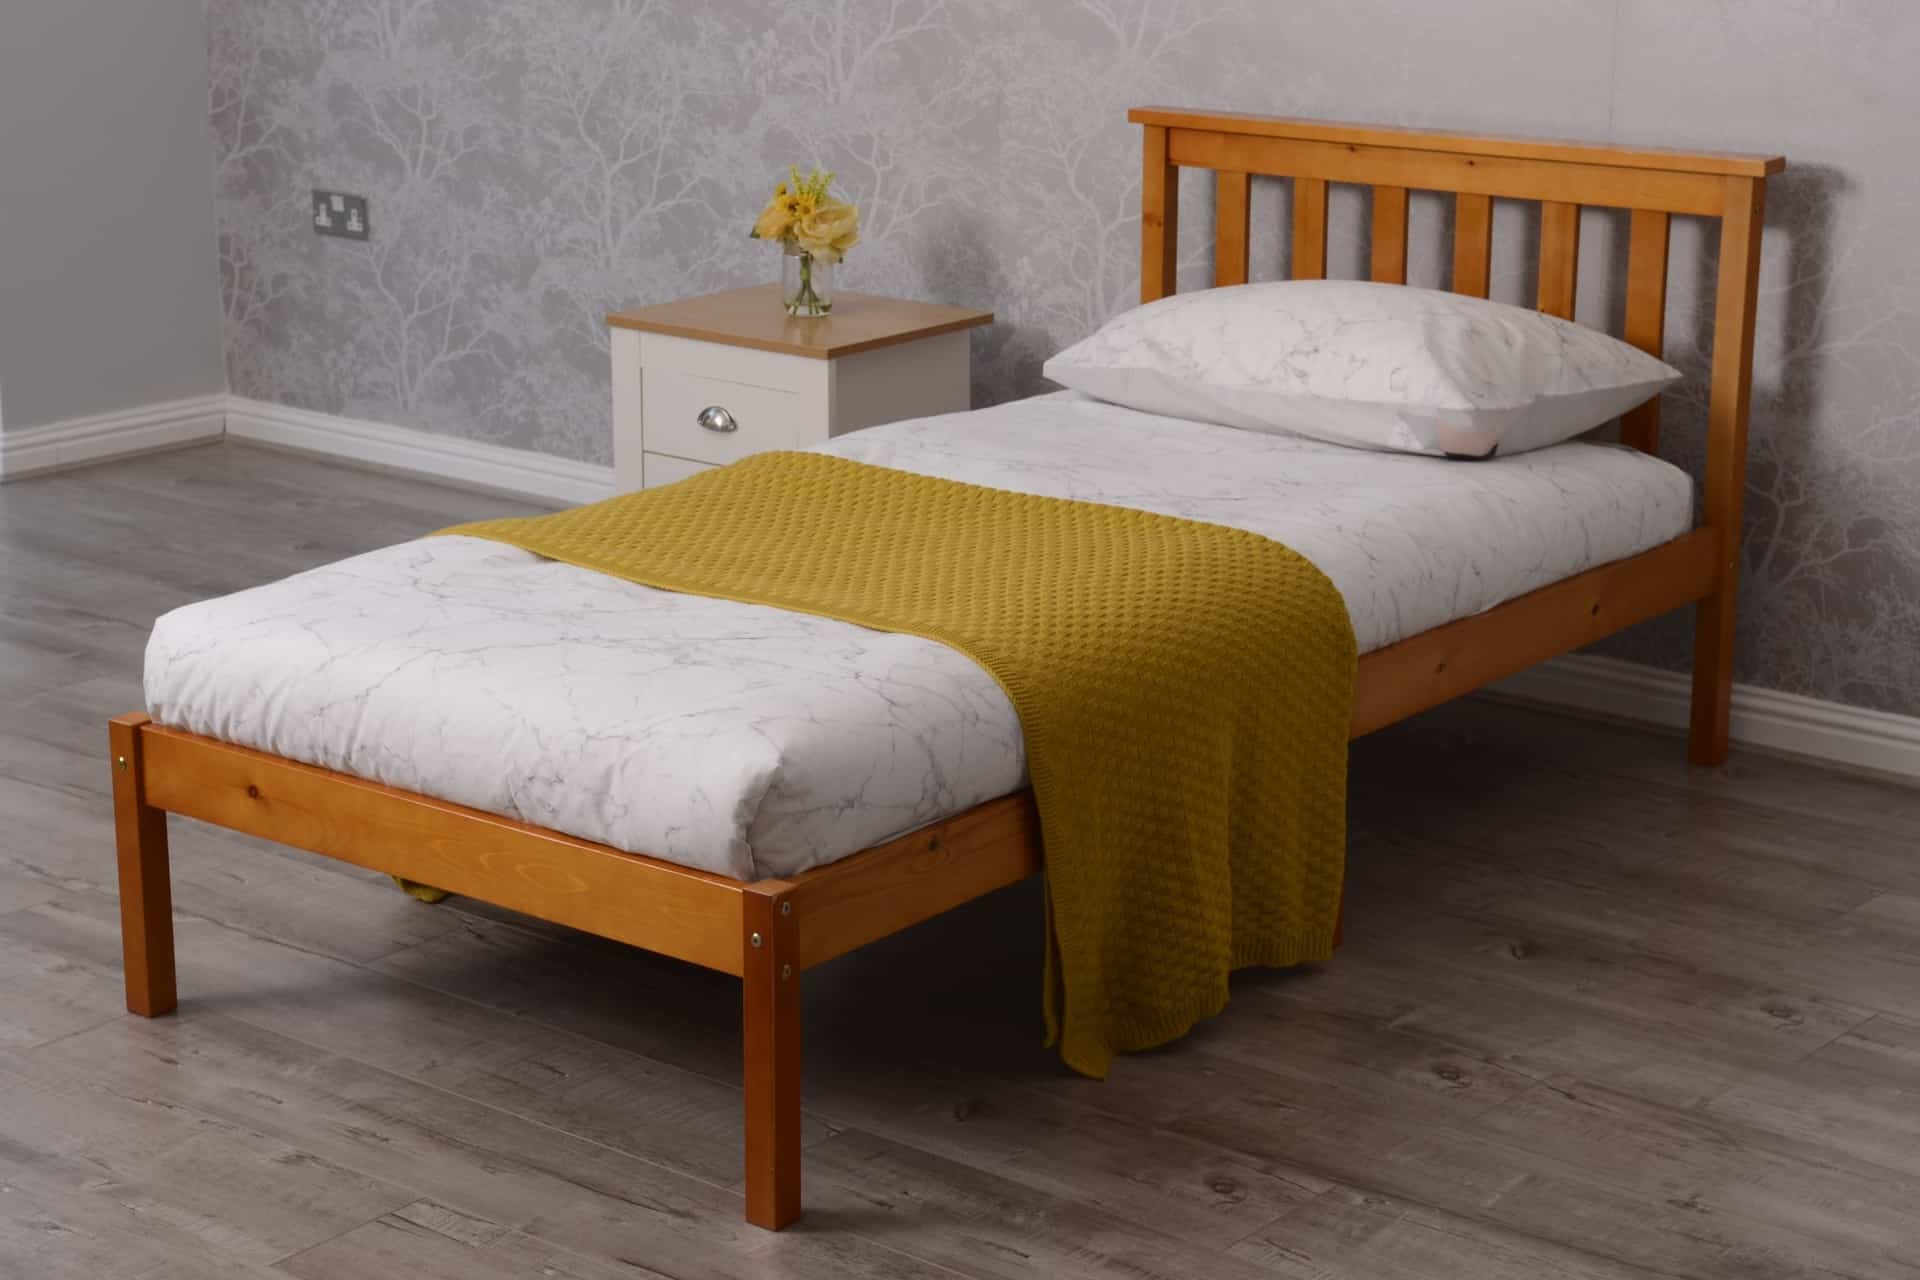 What Is The Length Of A Single Bed Single Bed Pine Wood 3ft Wooden Bed Dreams Outdoors Dreams